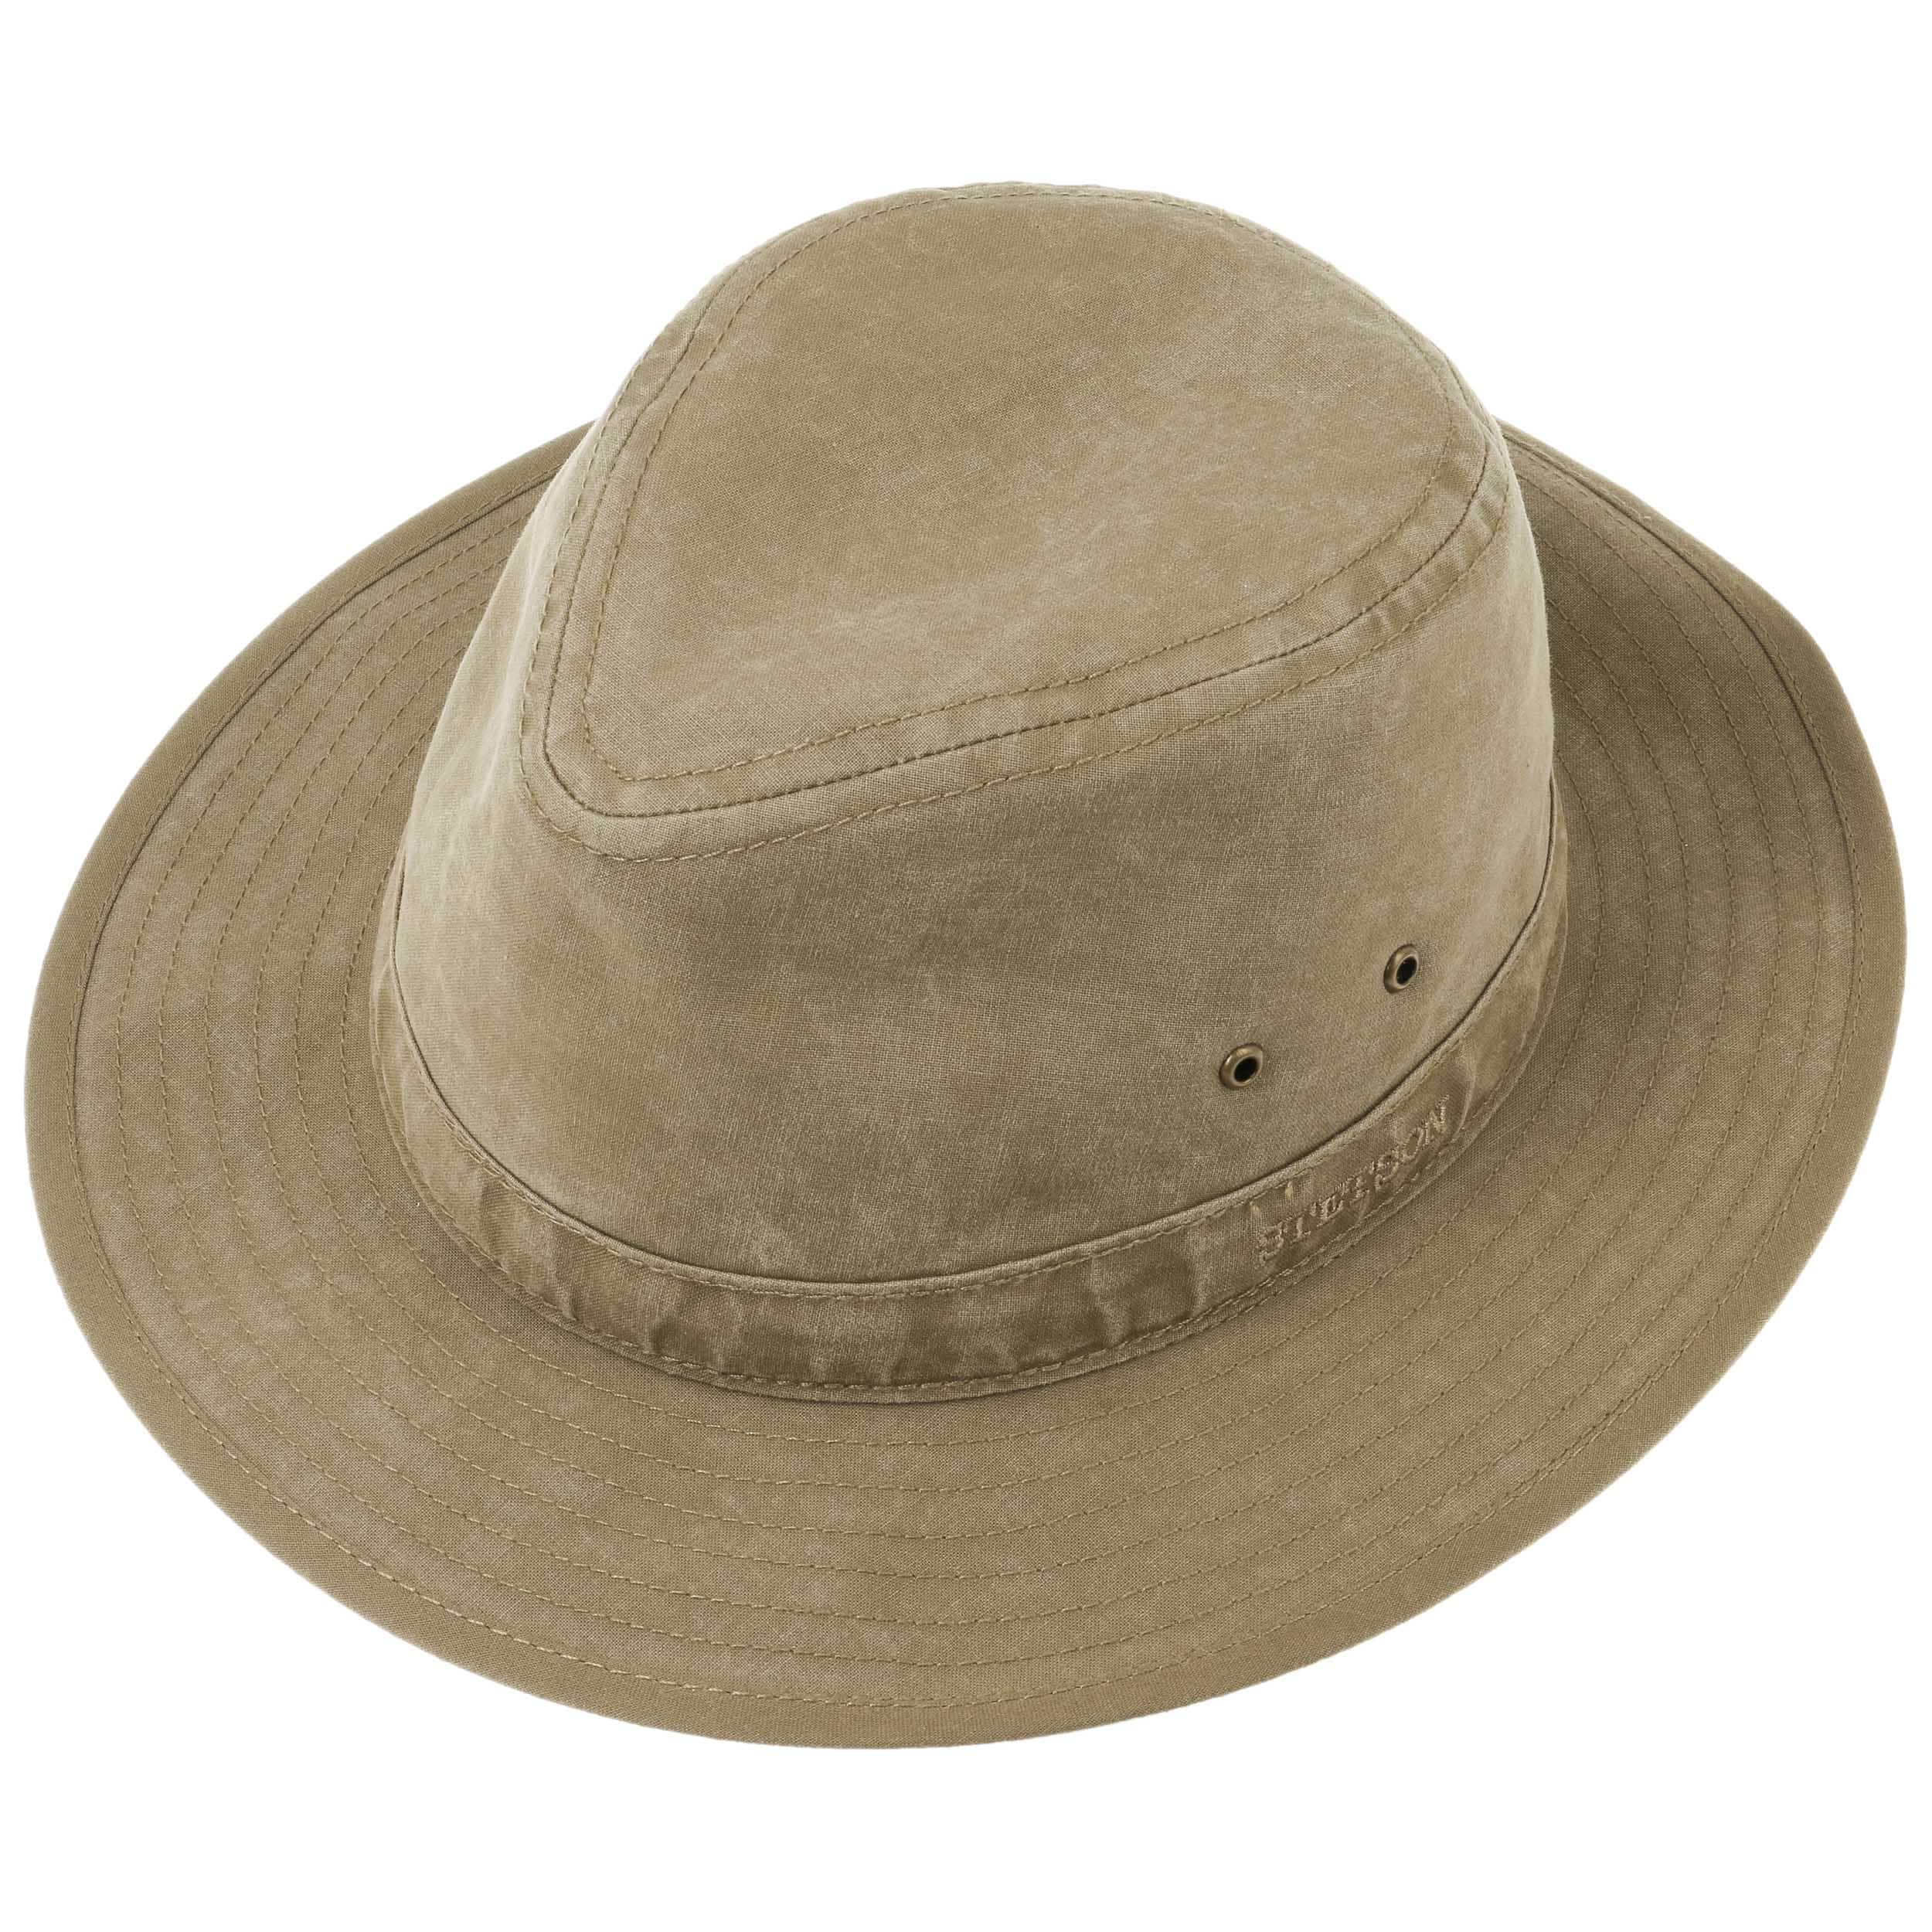 55a0e3e170f Delave Organic Cotton Traveller Hat by Stetson - khaki 1 ...